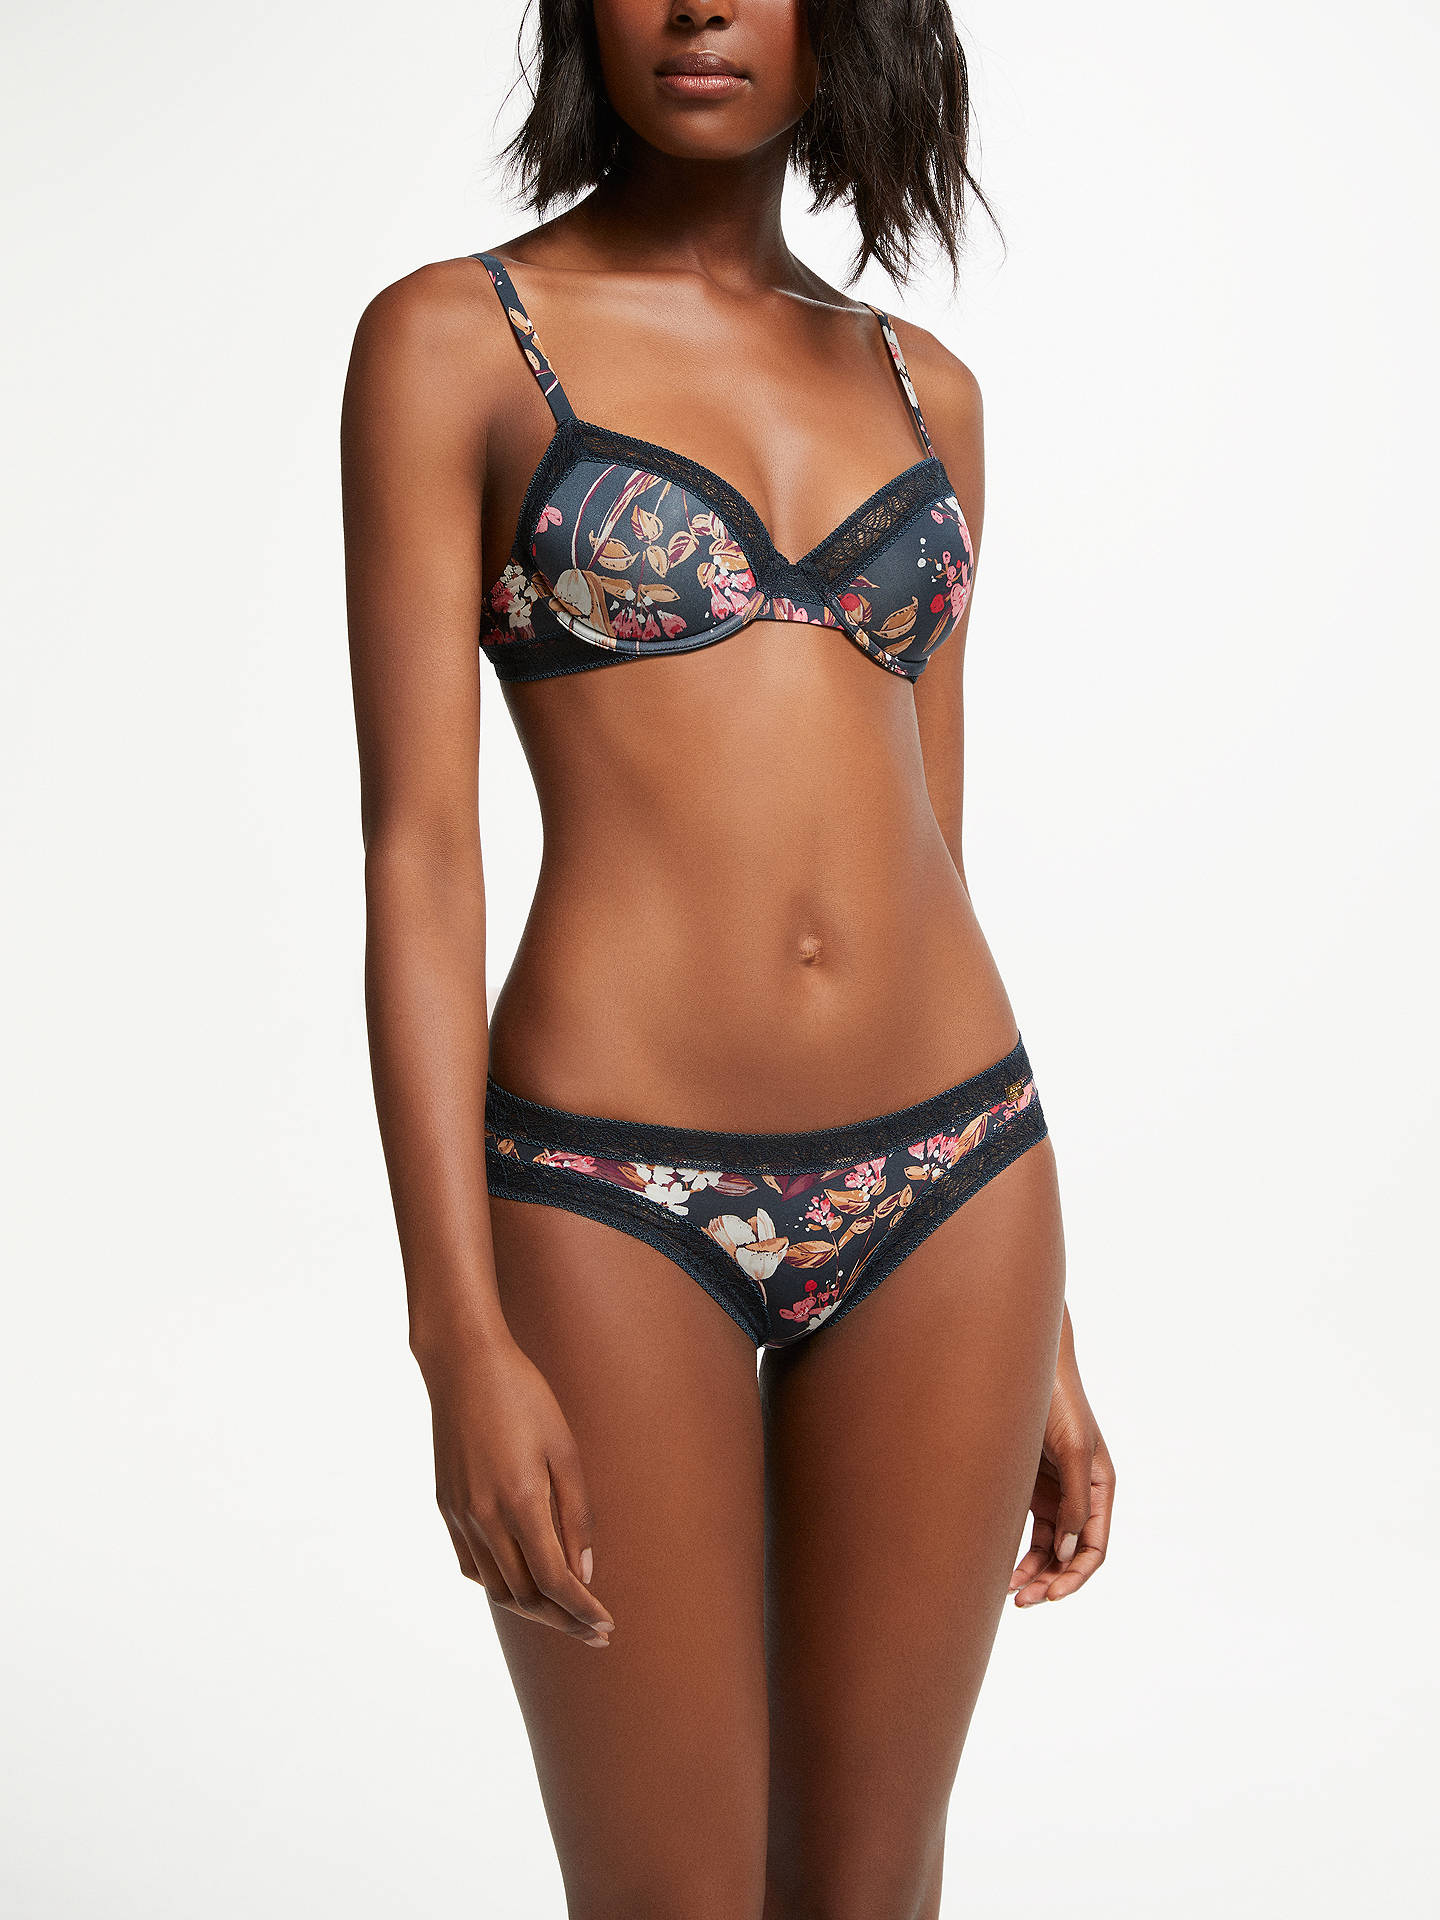 BuyAND/OR Phoebe Weathered Floral Print Bra, Navy, 30C Online at johnlewis.com